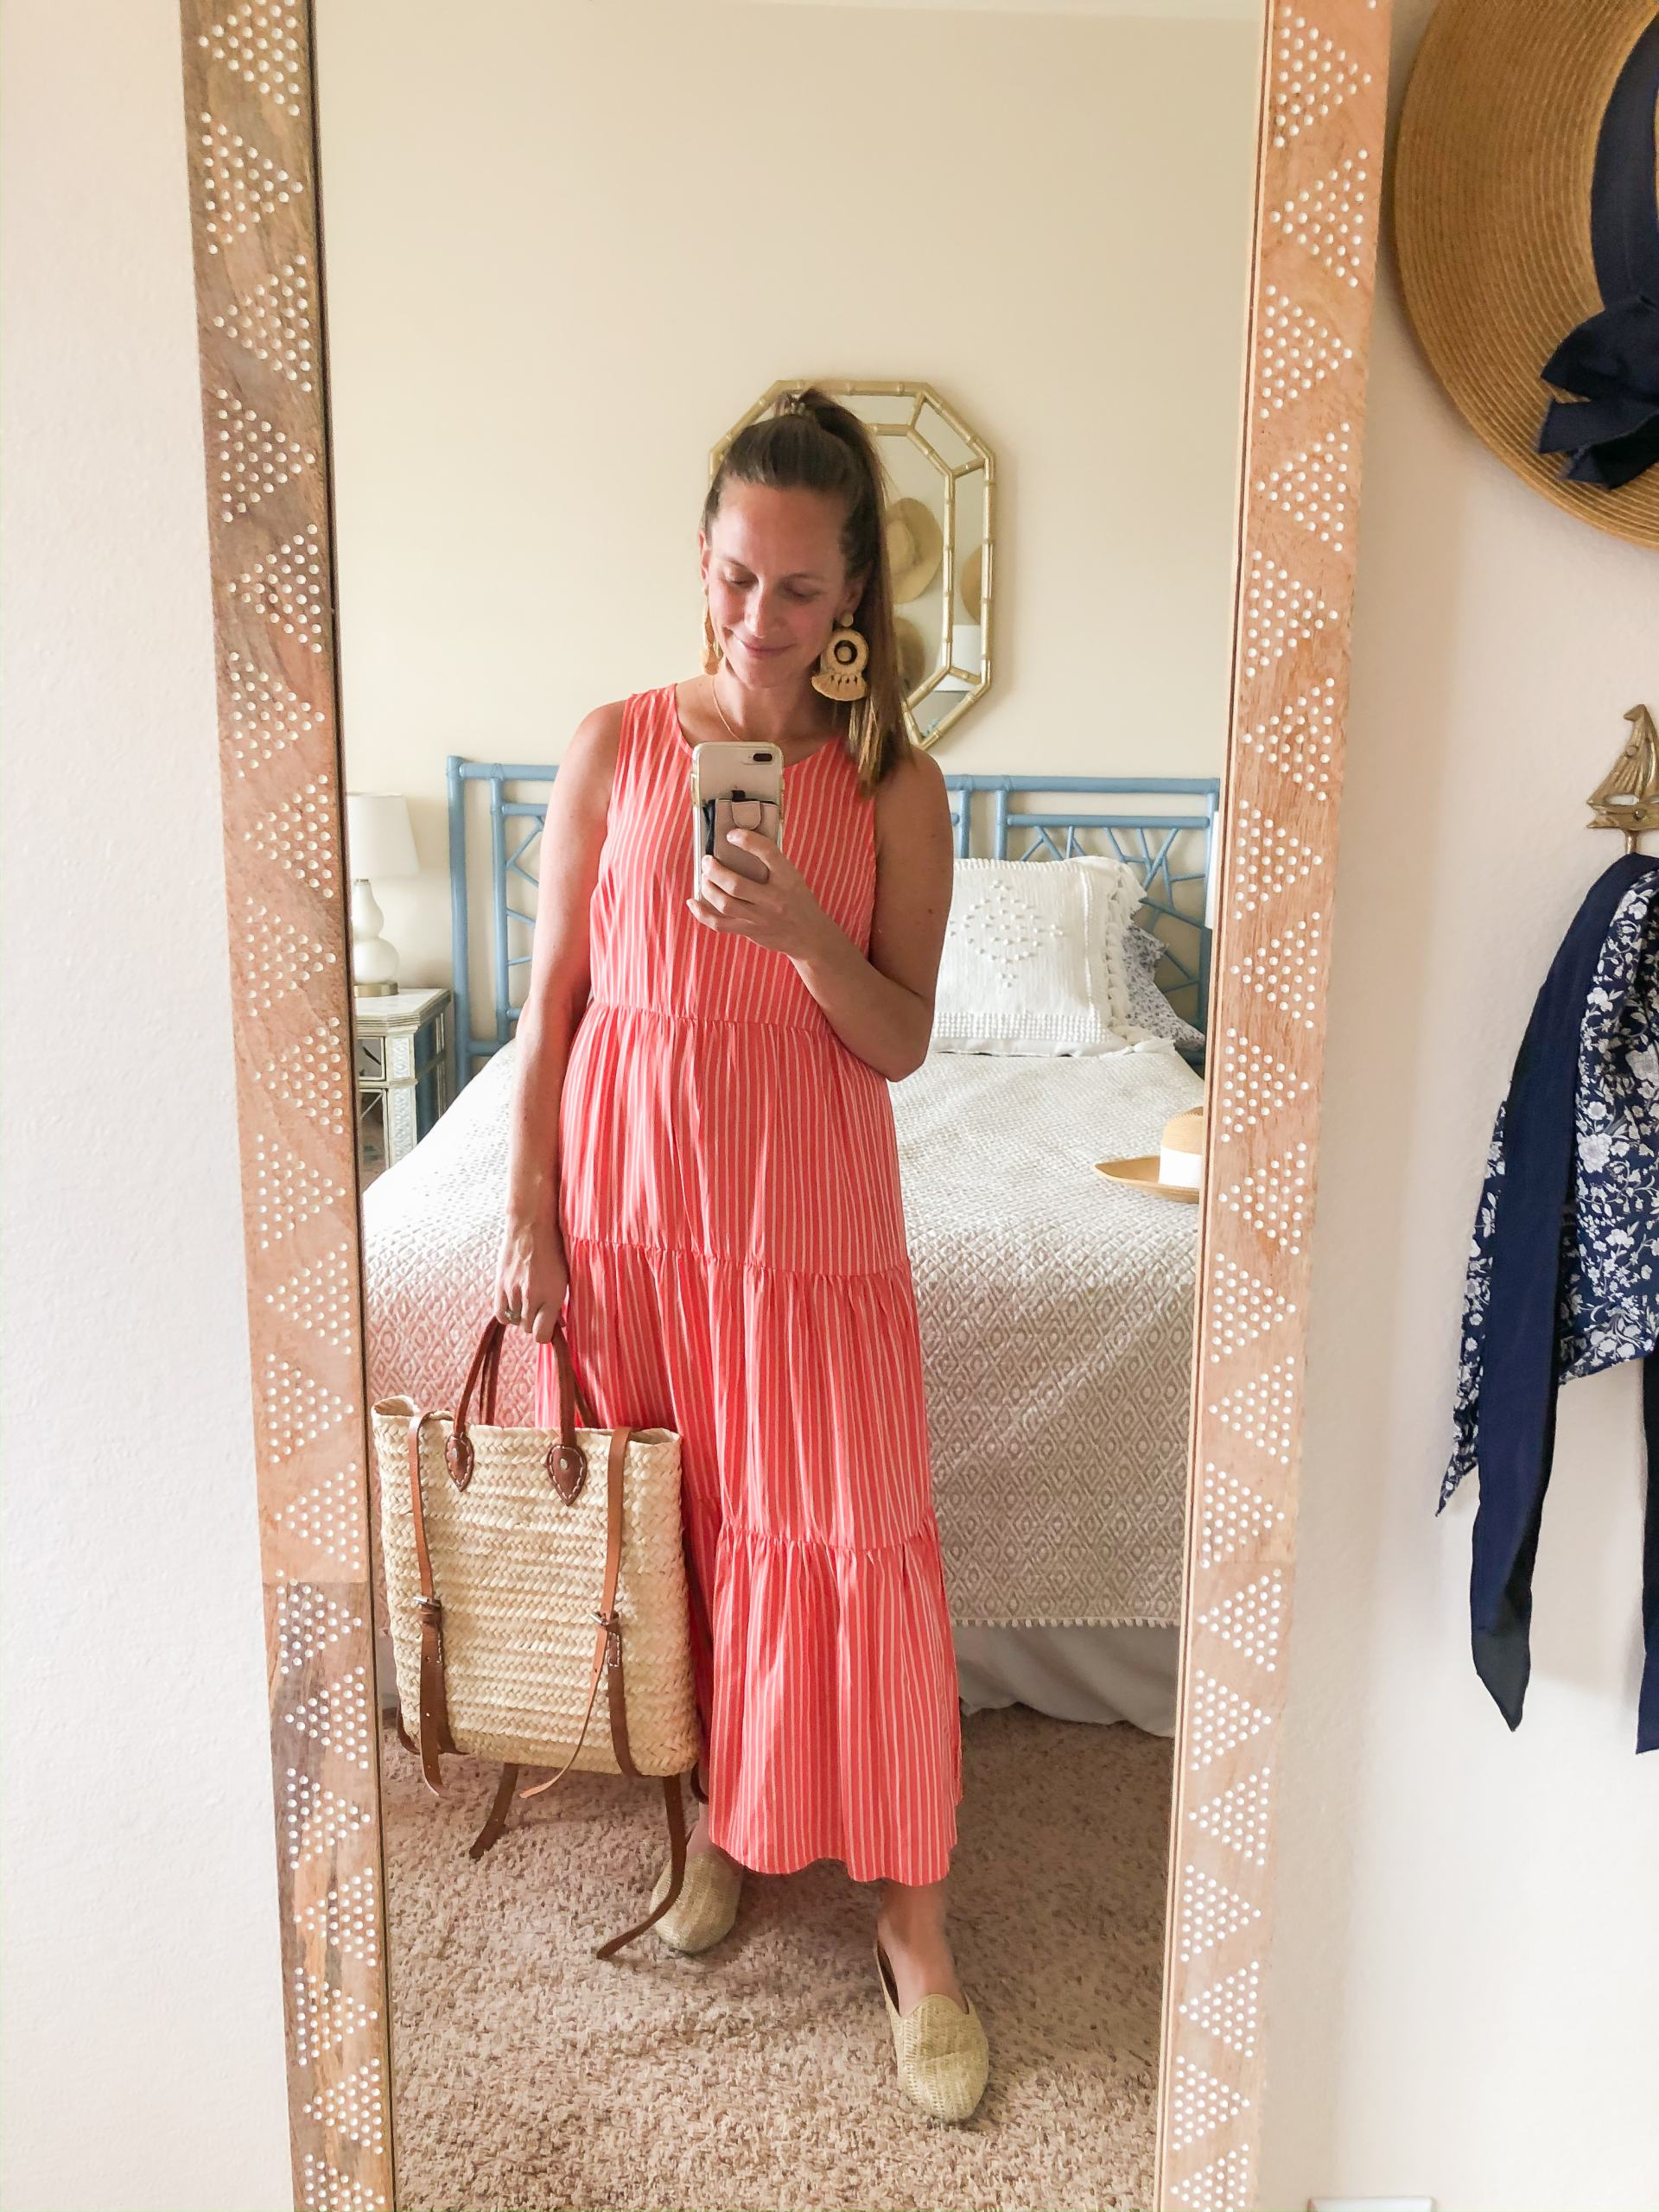 coral tiered maxi dress - affordable maxi dress - striped tiered maxi dress - basket backpack - basket bag - raffia earrings - rattan earrings - raffia dream catcher earrings - mom friendly spring outfit - spring outfit